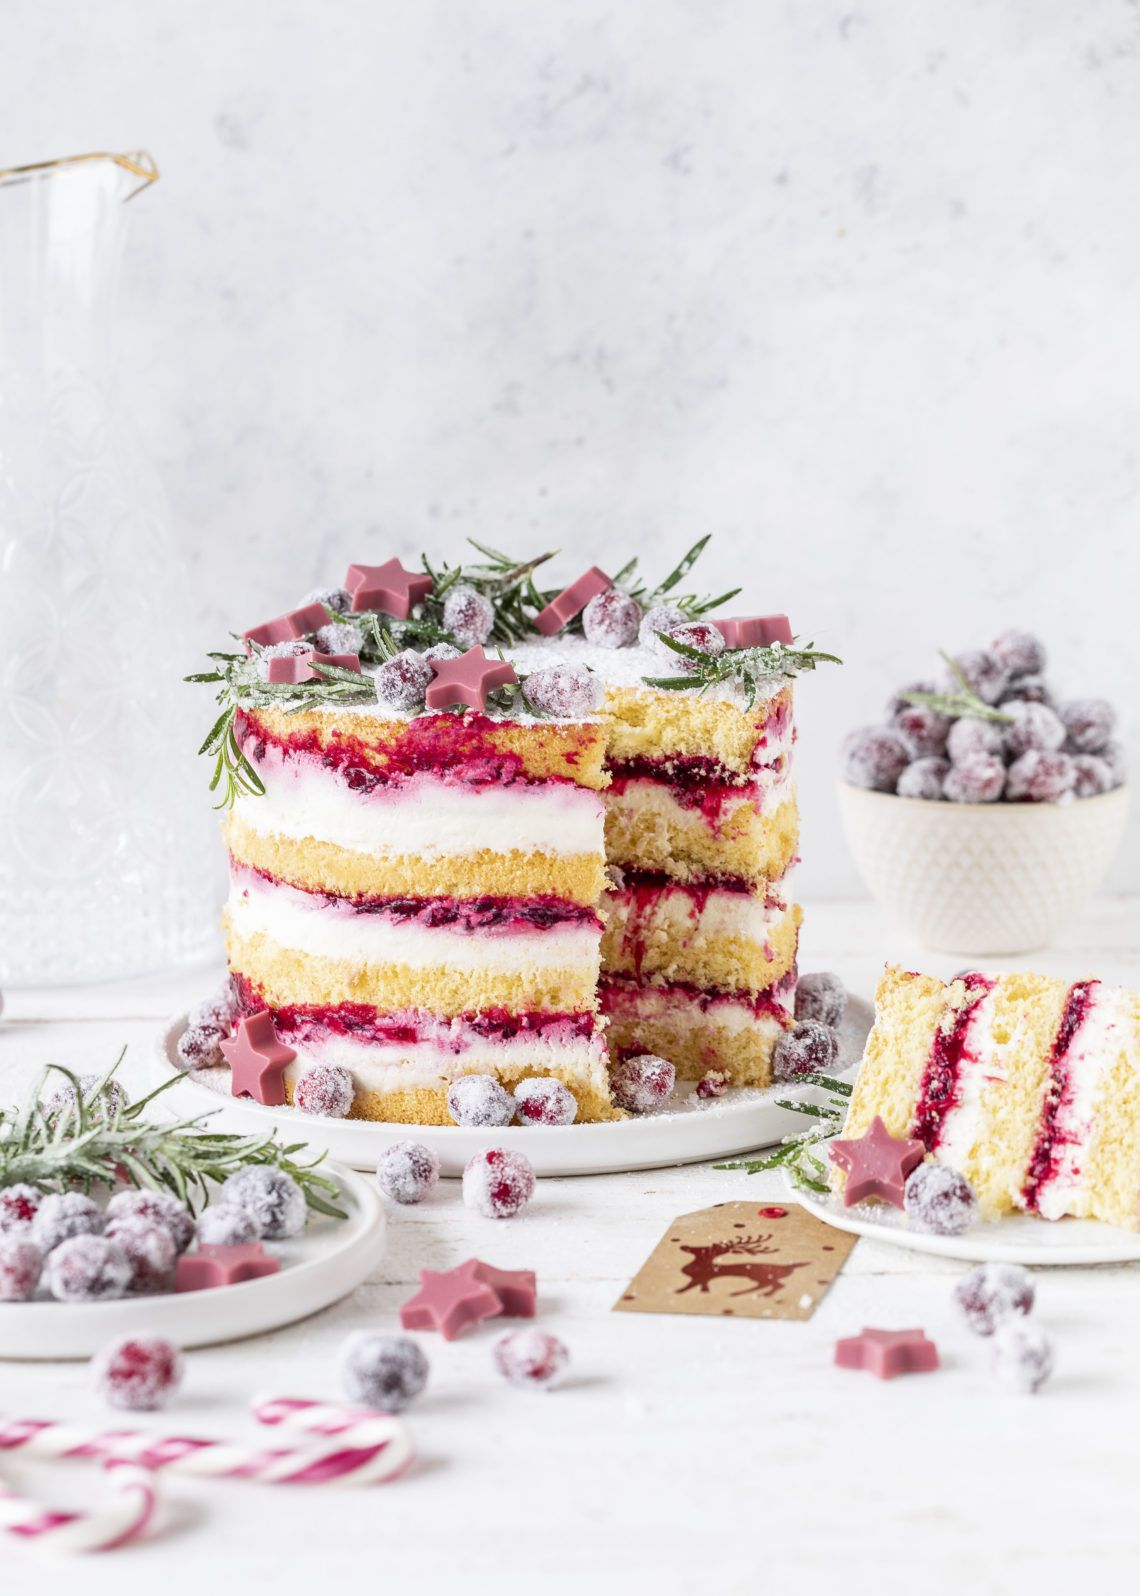 Leckere Cranberry Biskuit Torte Rezept Layer Cake #torte #cranberry #backen #lay…